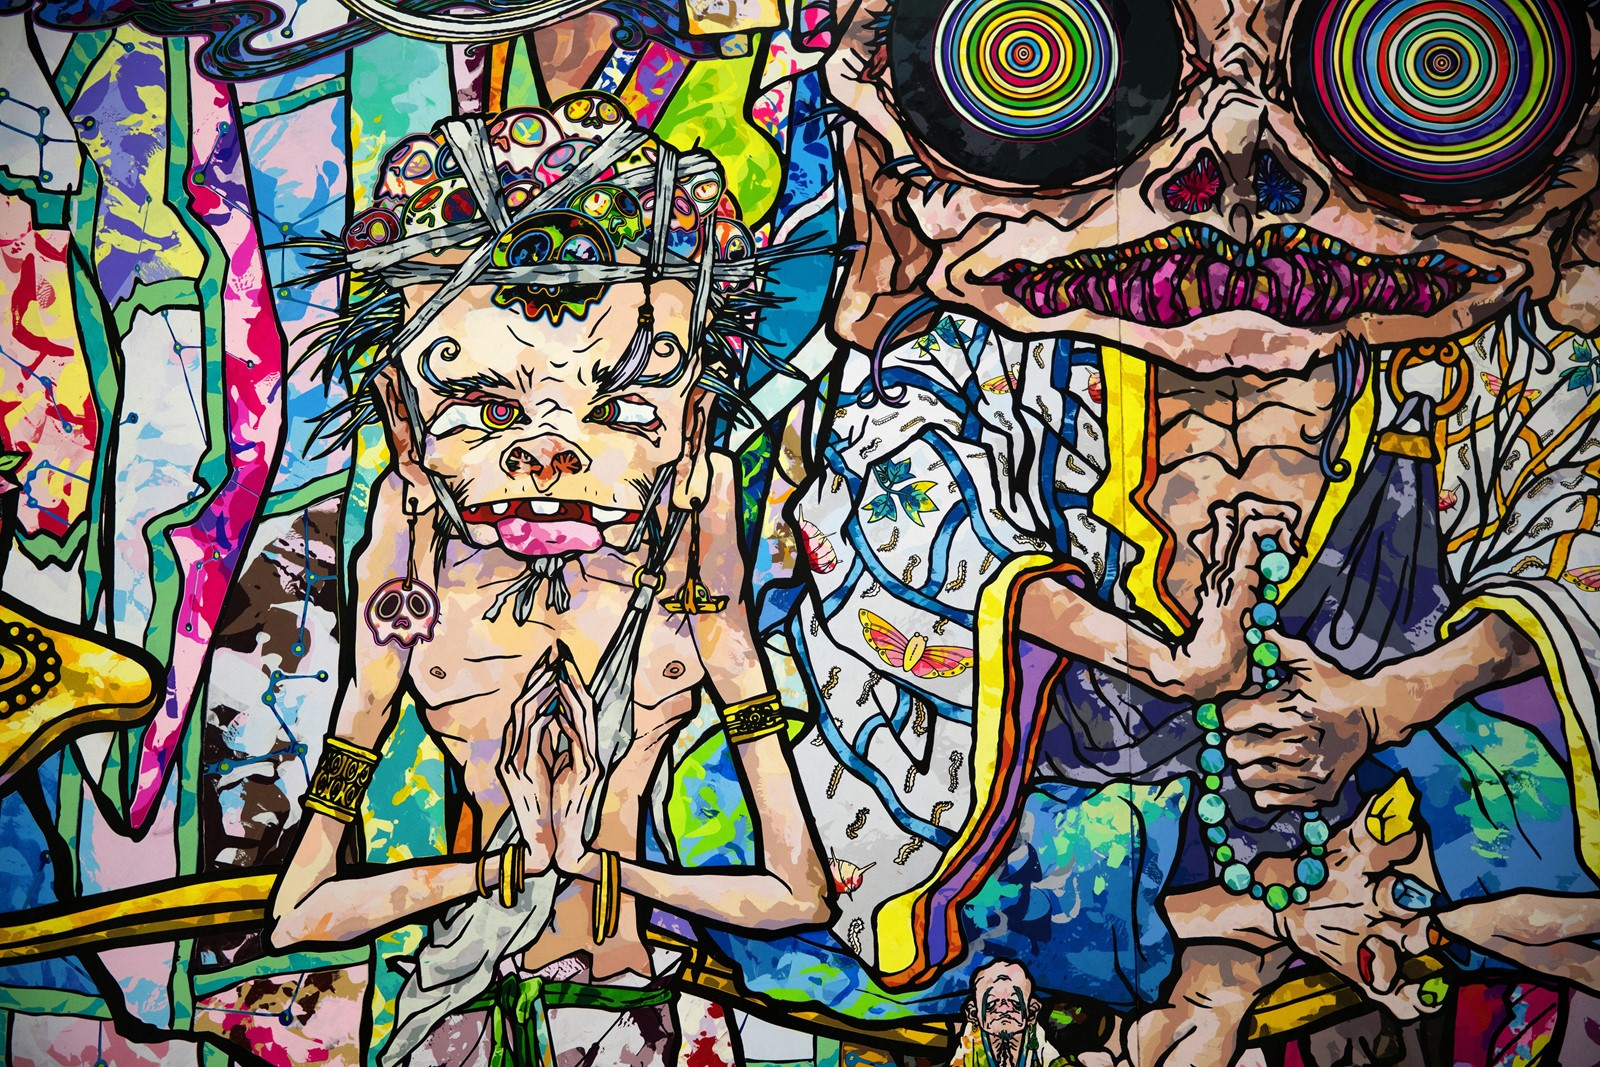 playful pop artist murakami shows deeper side at mca northwest